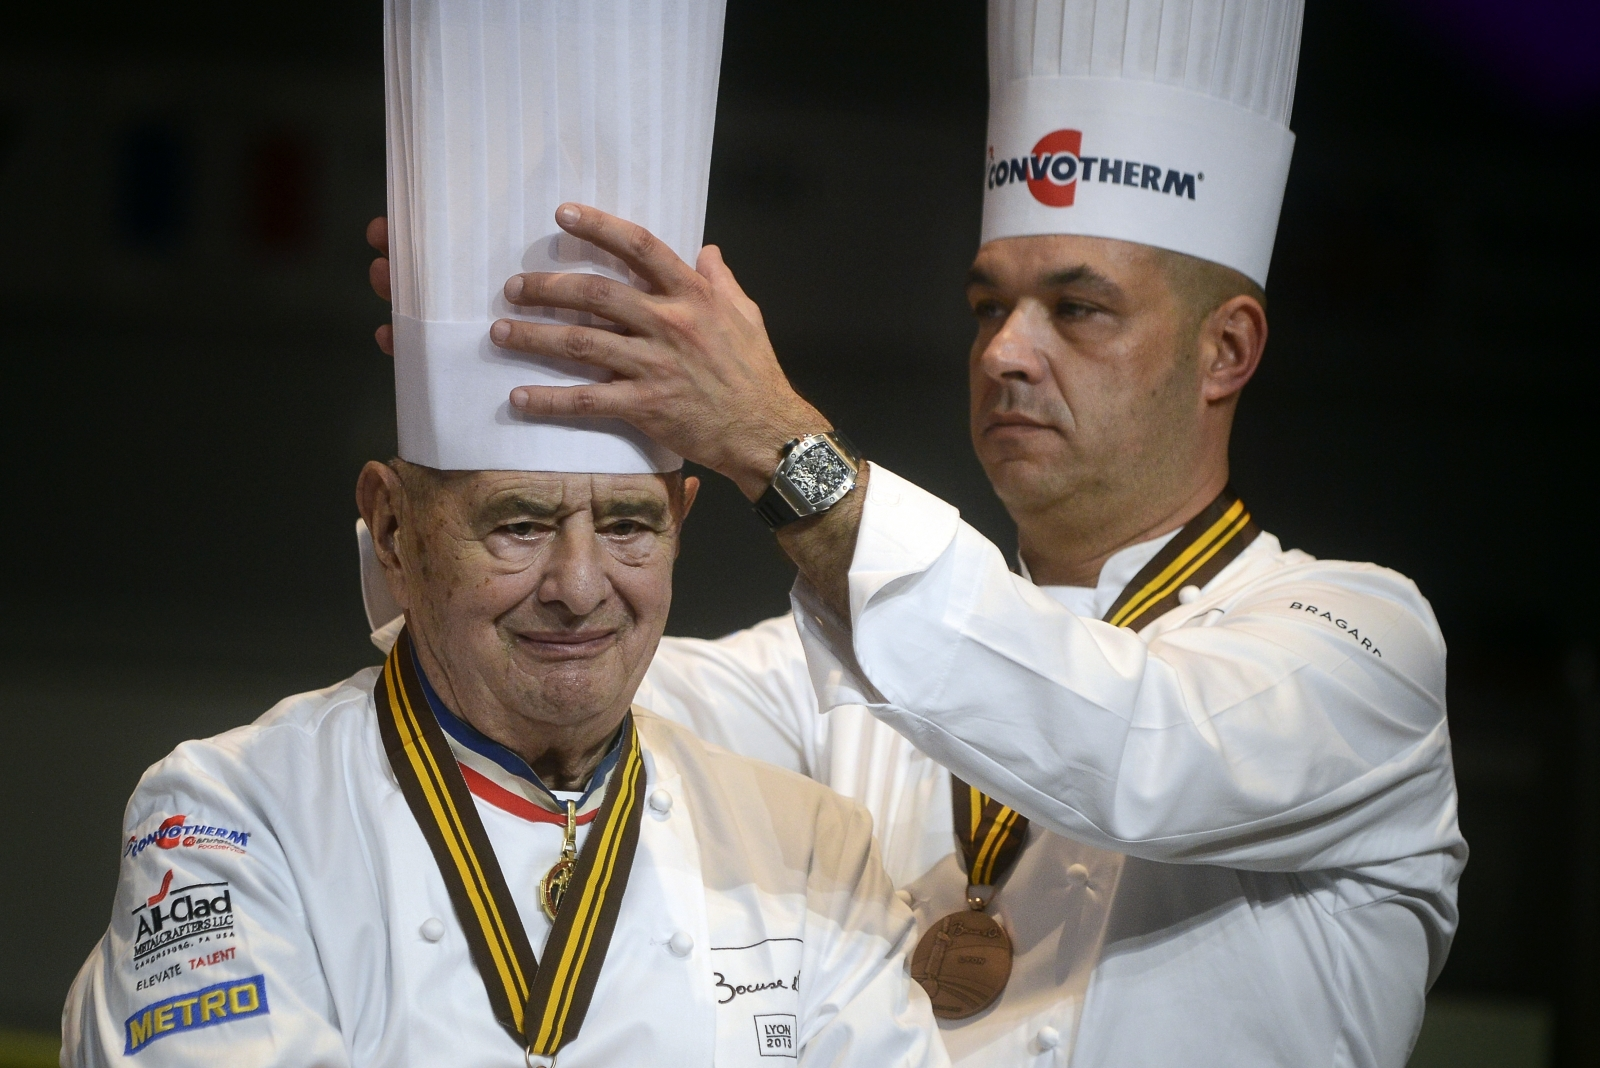 Hundreds of chefs from around the world, all in chef whites, attend Paul Bocuse's funeral in Lyon